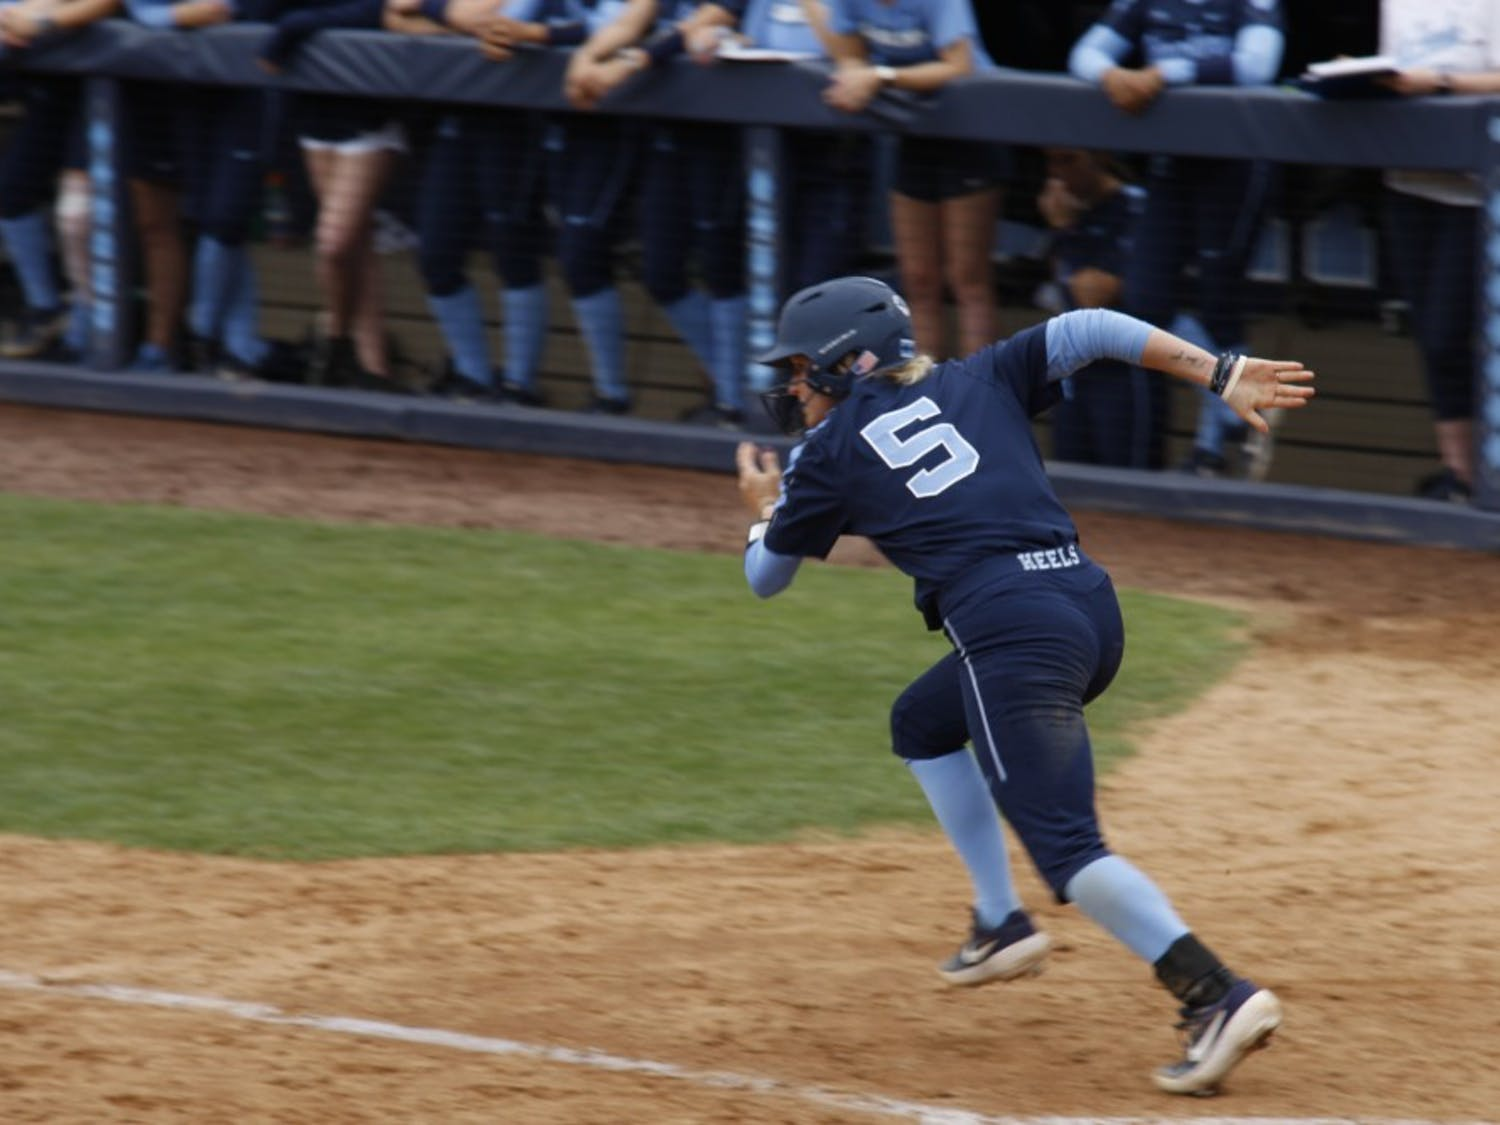 Junior first baseman Campbell Hutcherson (5) charges for first base during UNC's softball win against Virginia on Saturday, Apr. 6, 2019.